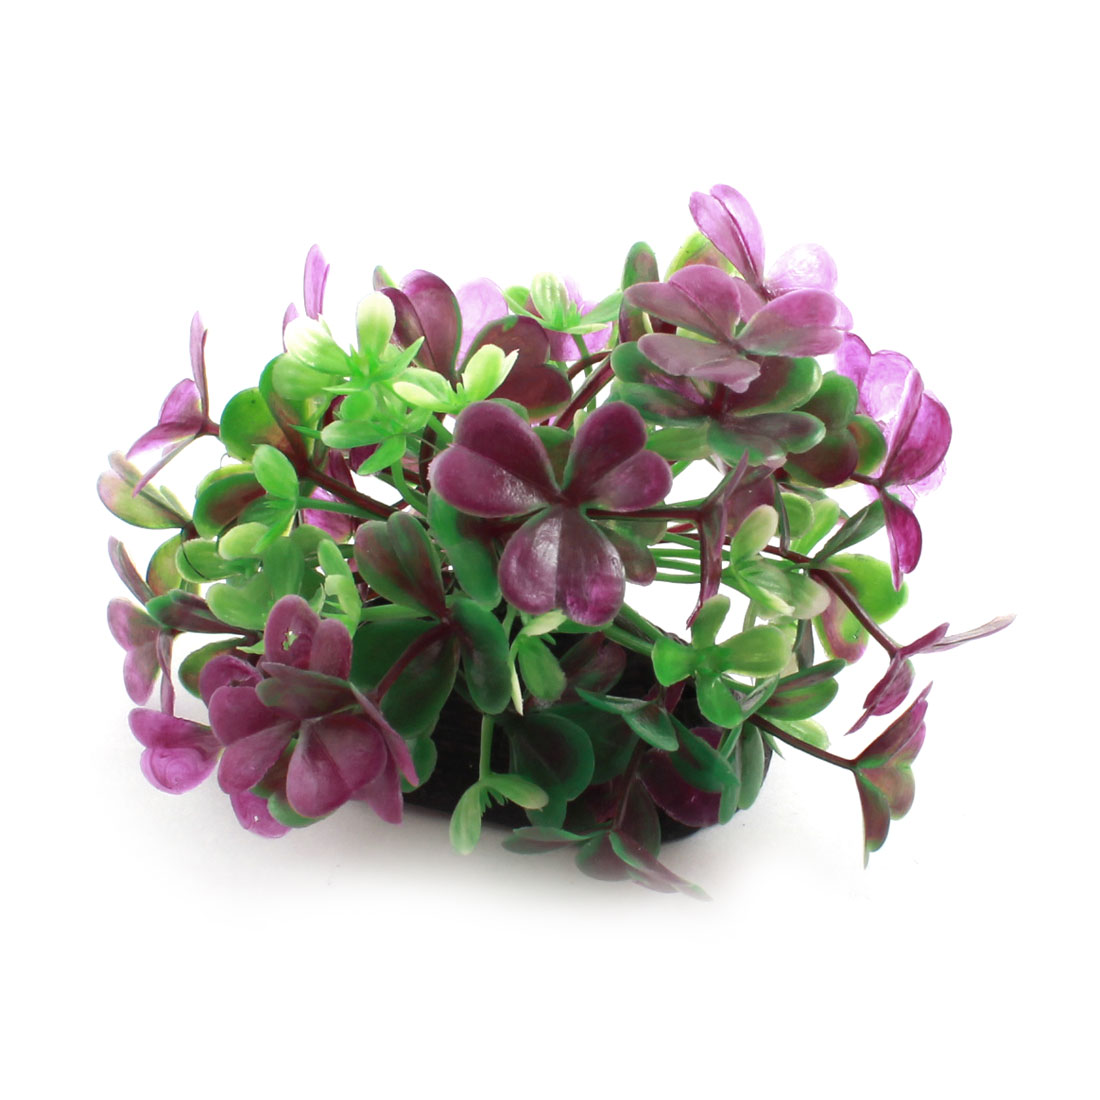 "Aquarium Underwater Landscaping Plastic Grass Plant Decor Purple Green 3"" Height"